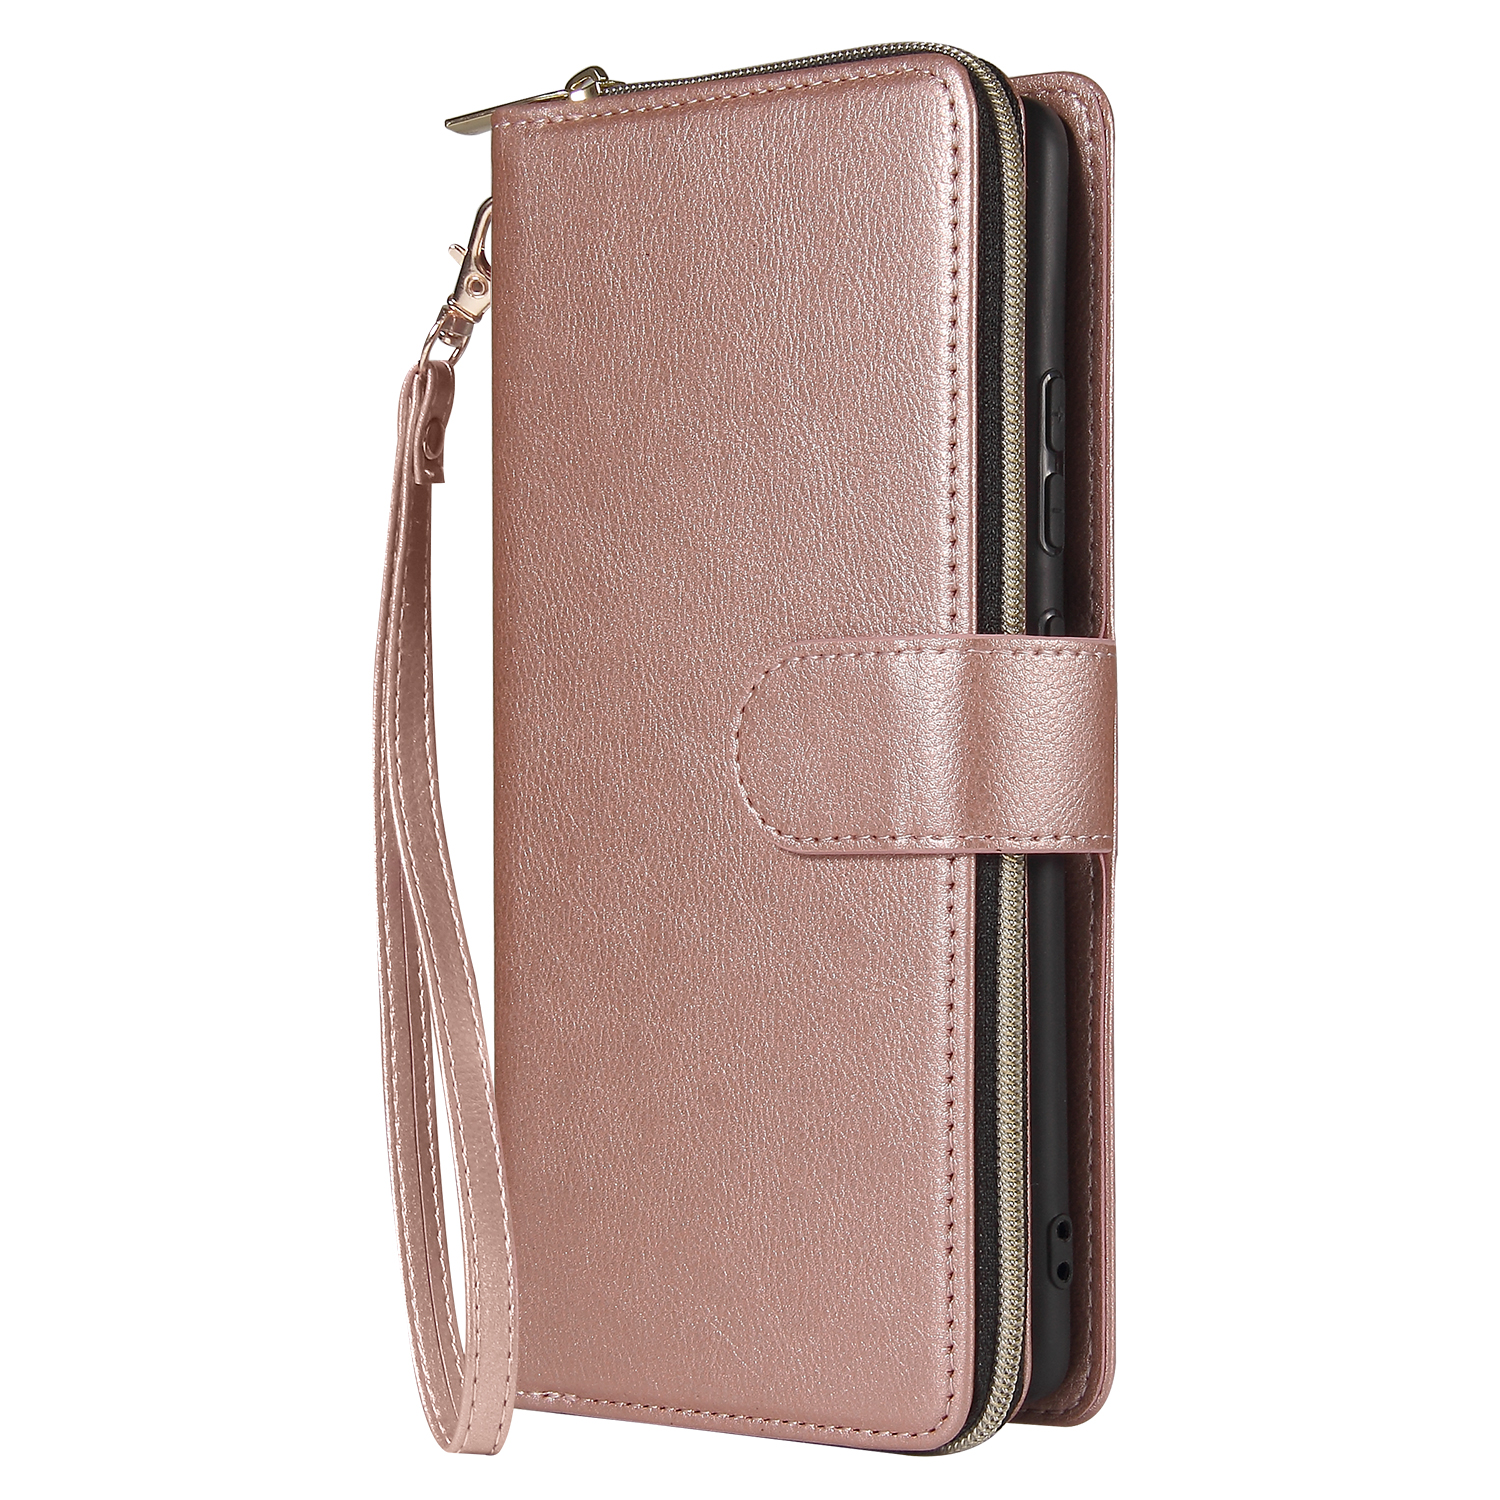 For Samsung A51 5G/A71 5G/Note 10 pro Pu Leather  Mobile Phone Cover Zipper Card Bag + Wrist Strap Rose gold